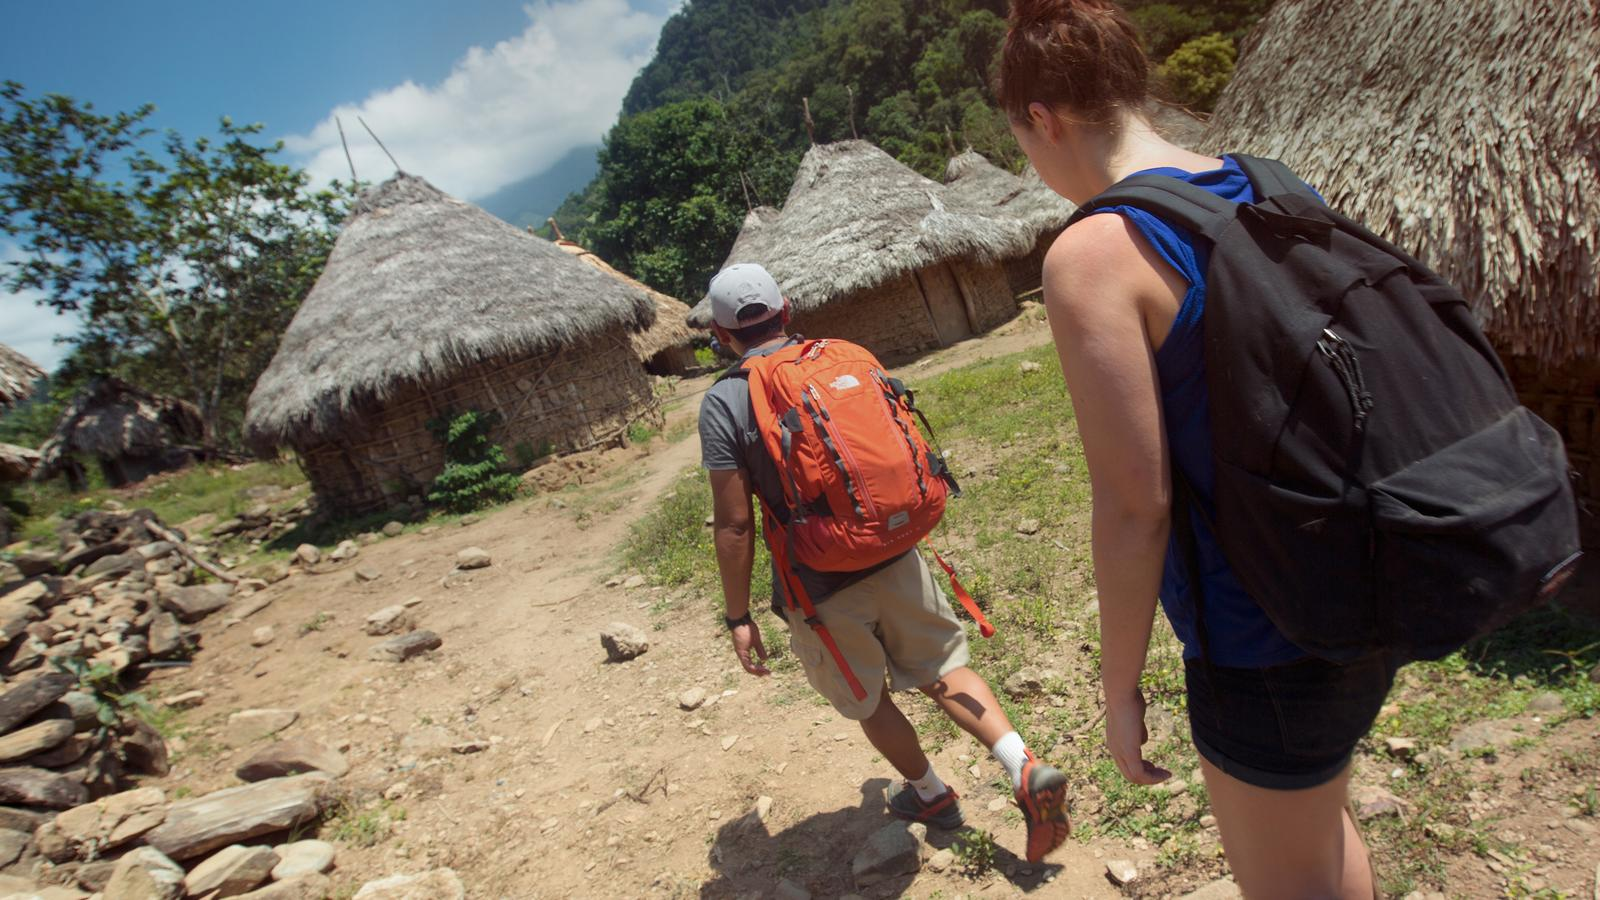 Visiting the Lost City Village in Colombia